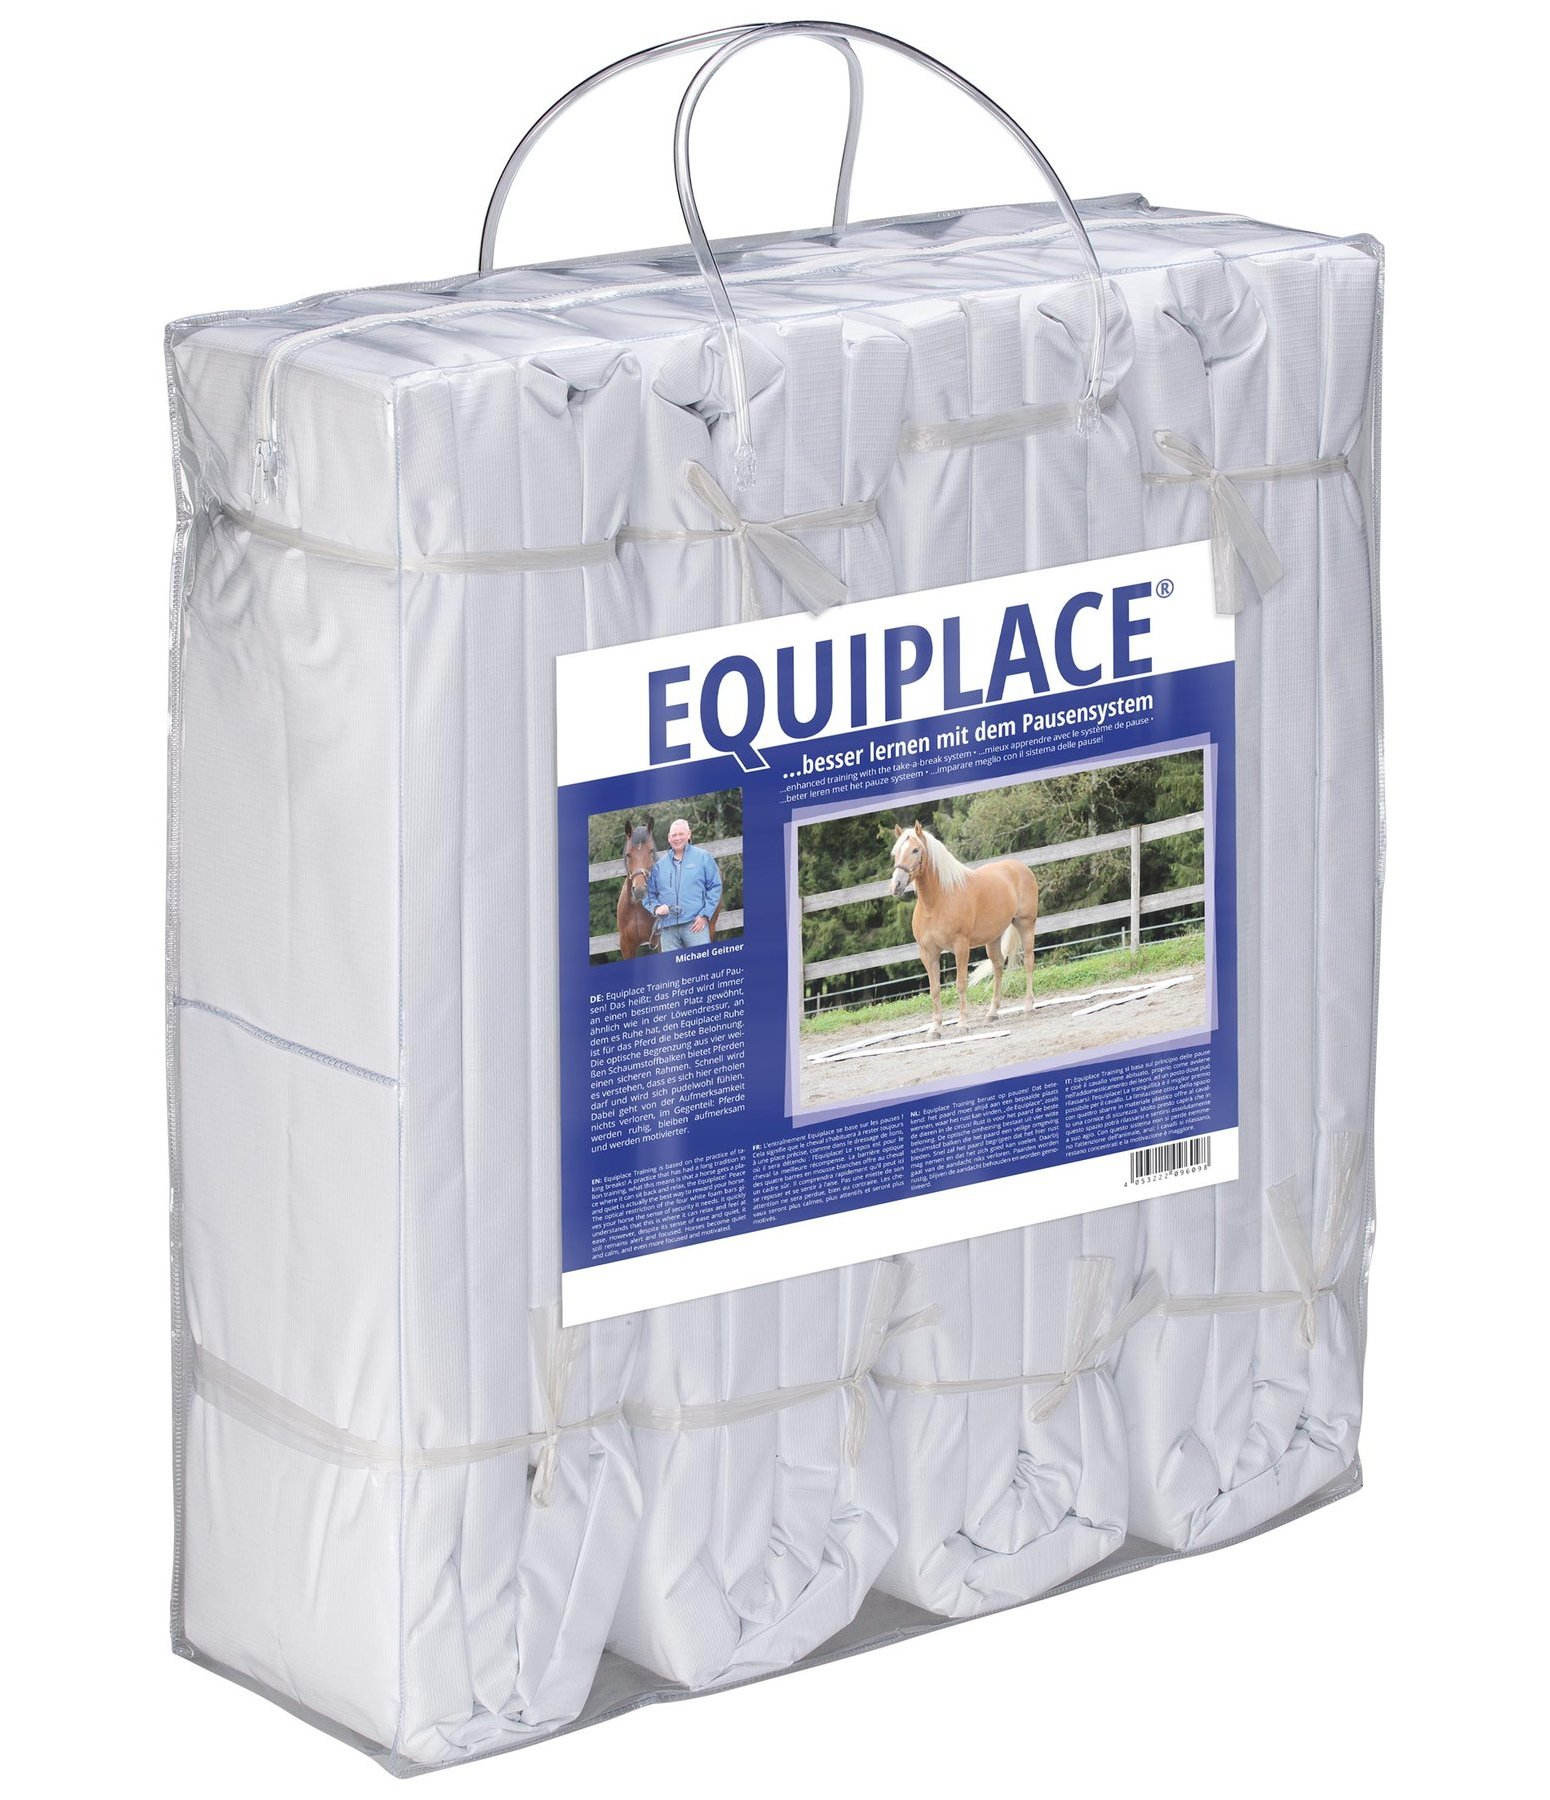 Equiplace